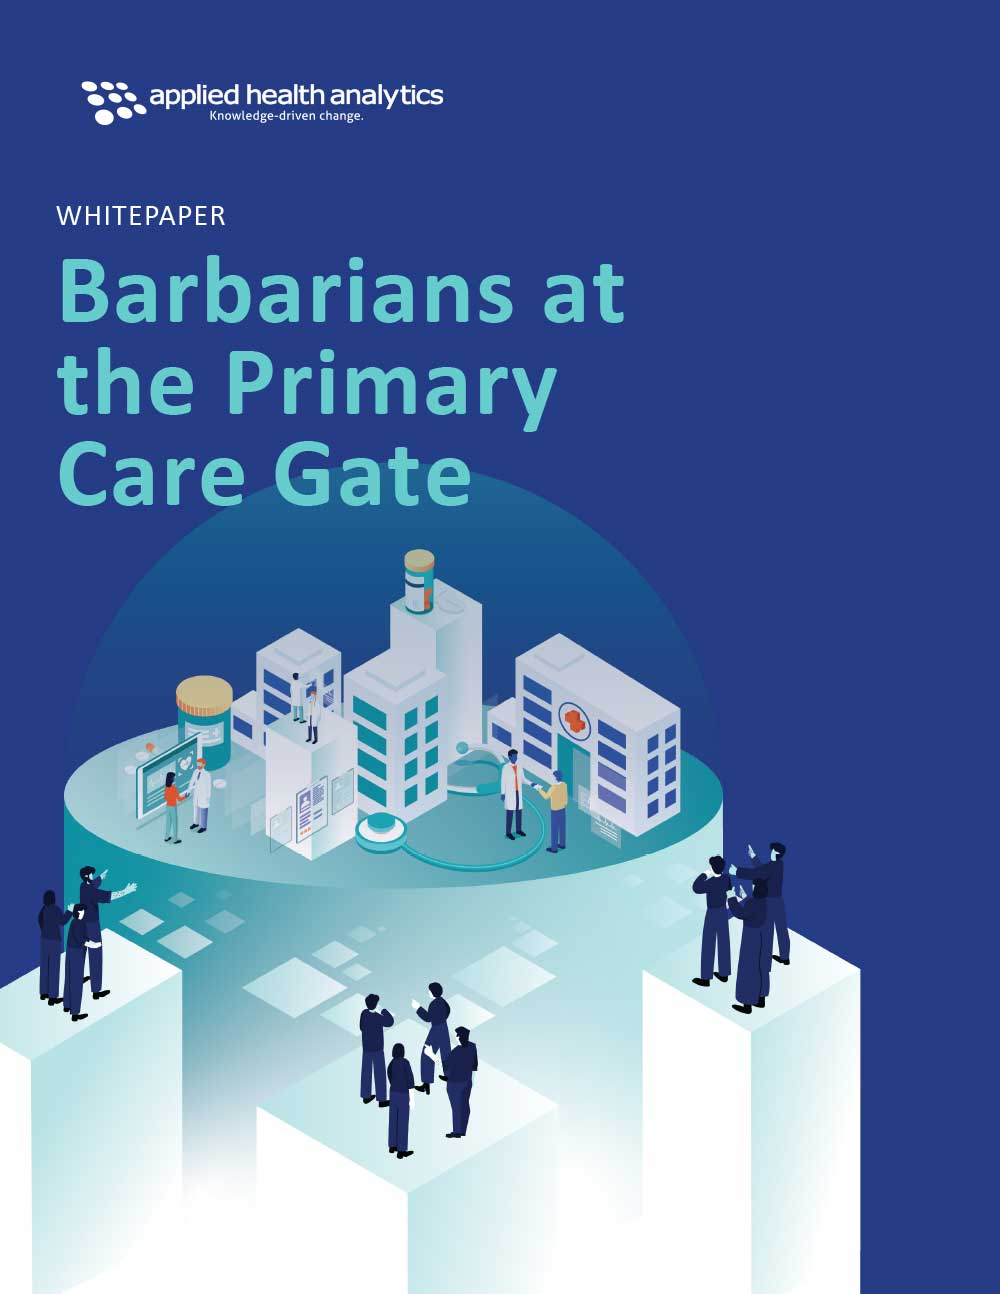 Barbarians at the Primary Care Gate